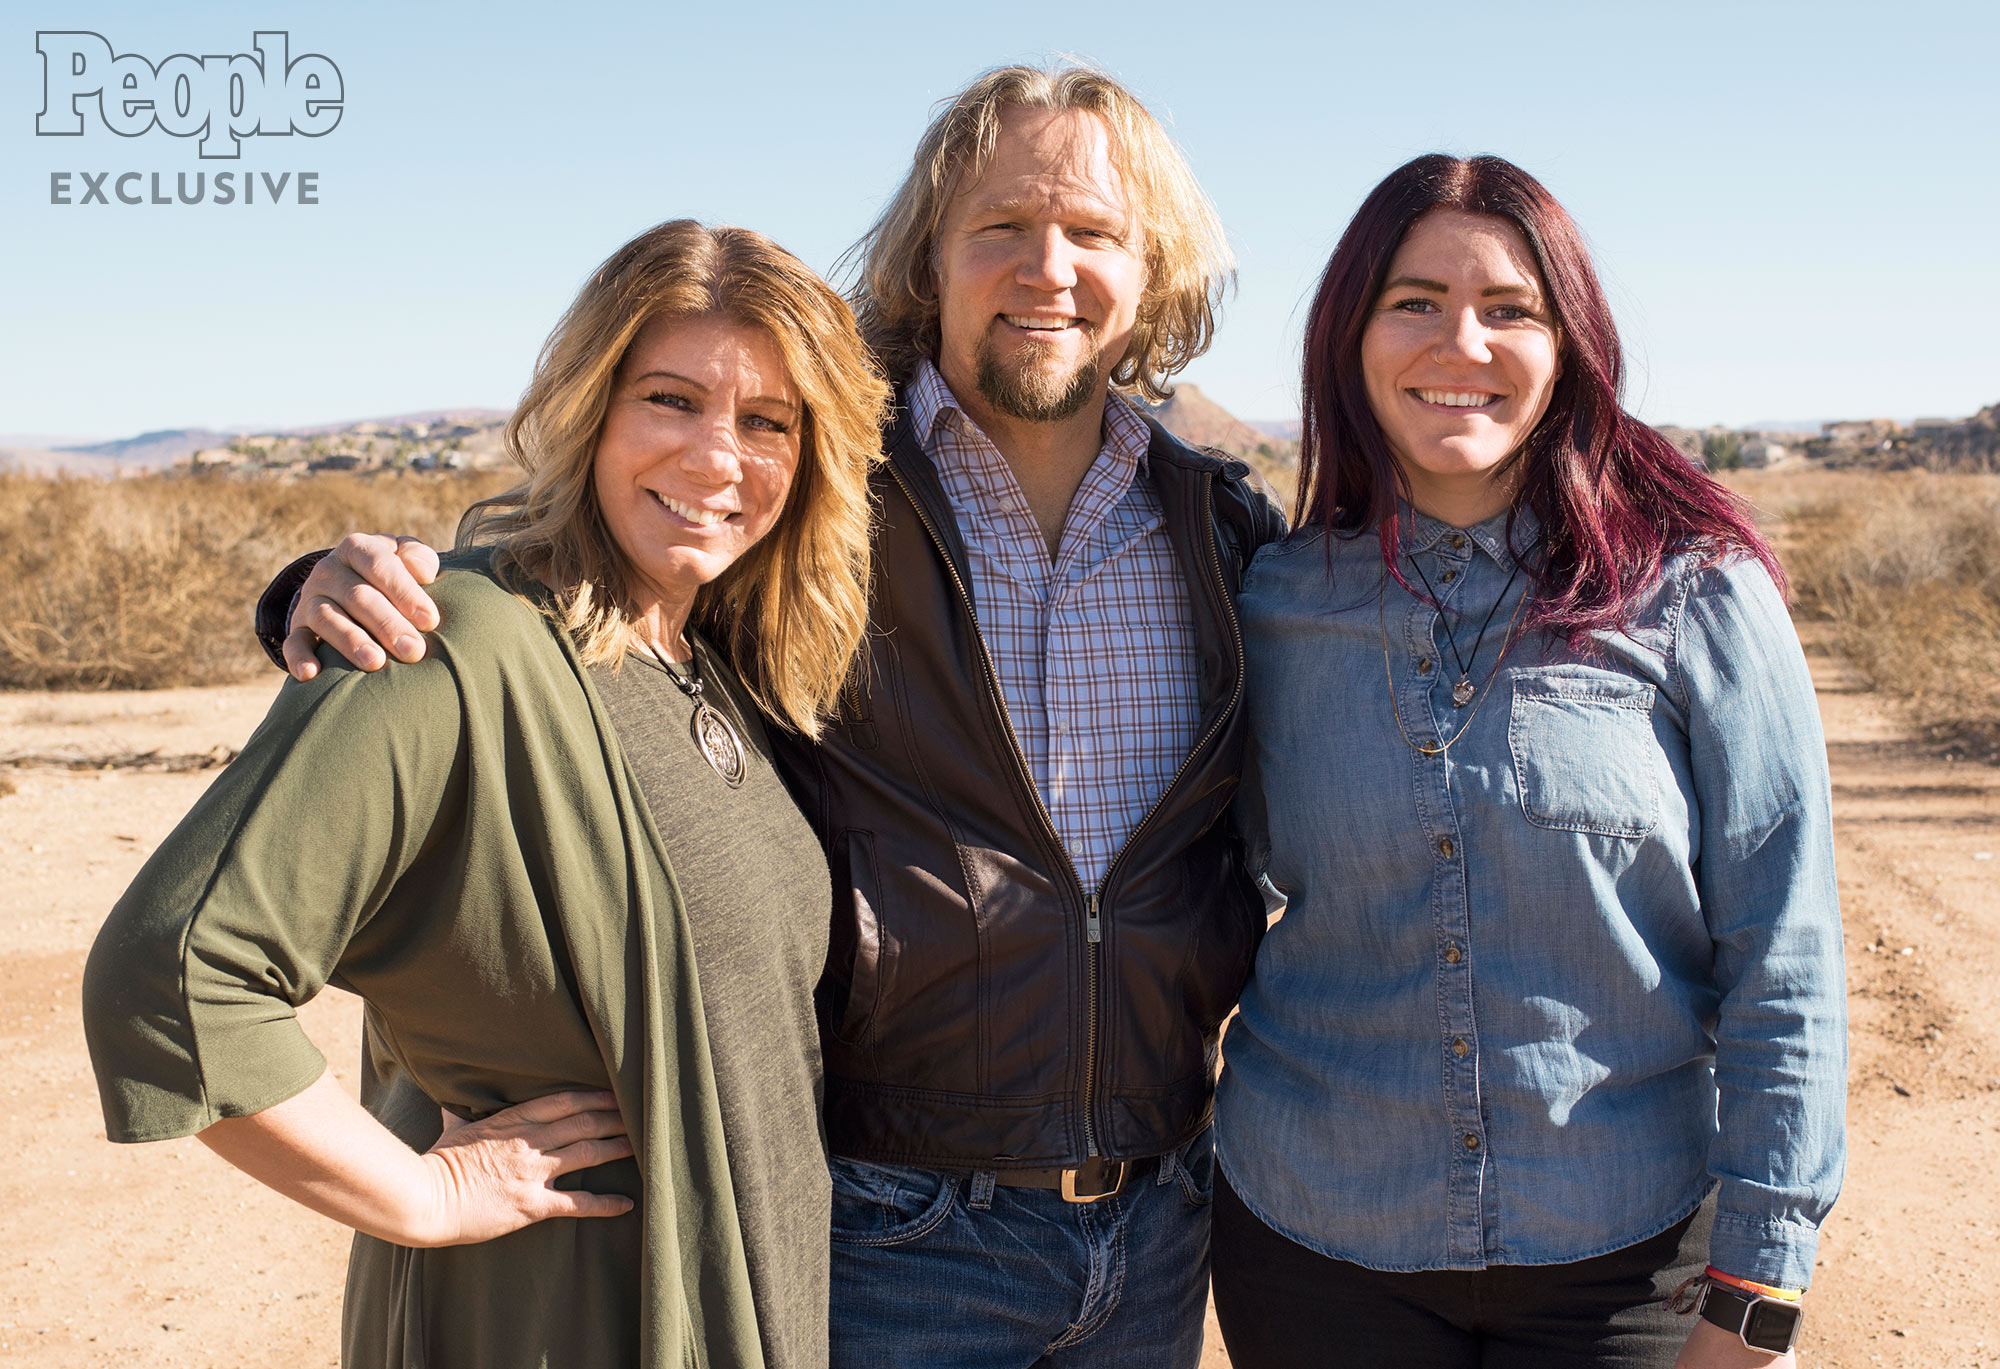 Sister Wives' Kody, Meri and Mariah Brown photographed in St. George, UT, on Dec. 18, 2016. Photographer: Christian Witkin Hair and Makeup: Noel Kanaley/Zenobia Agency